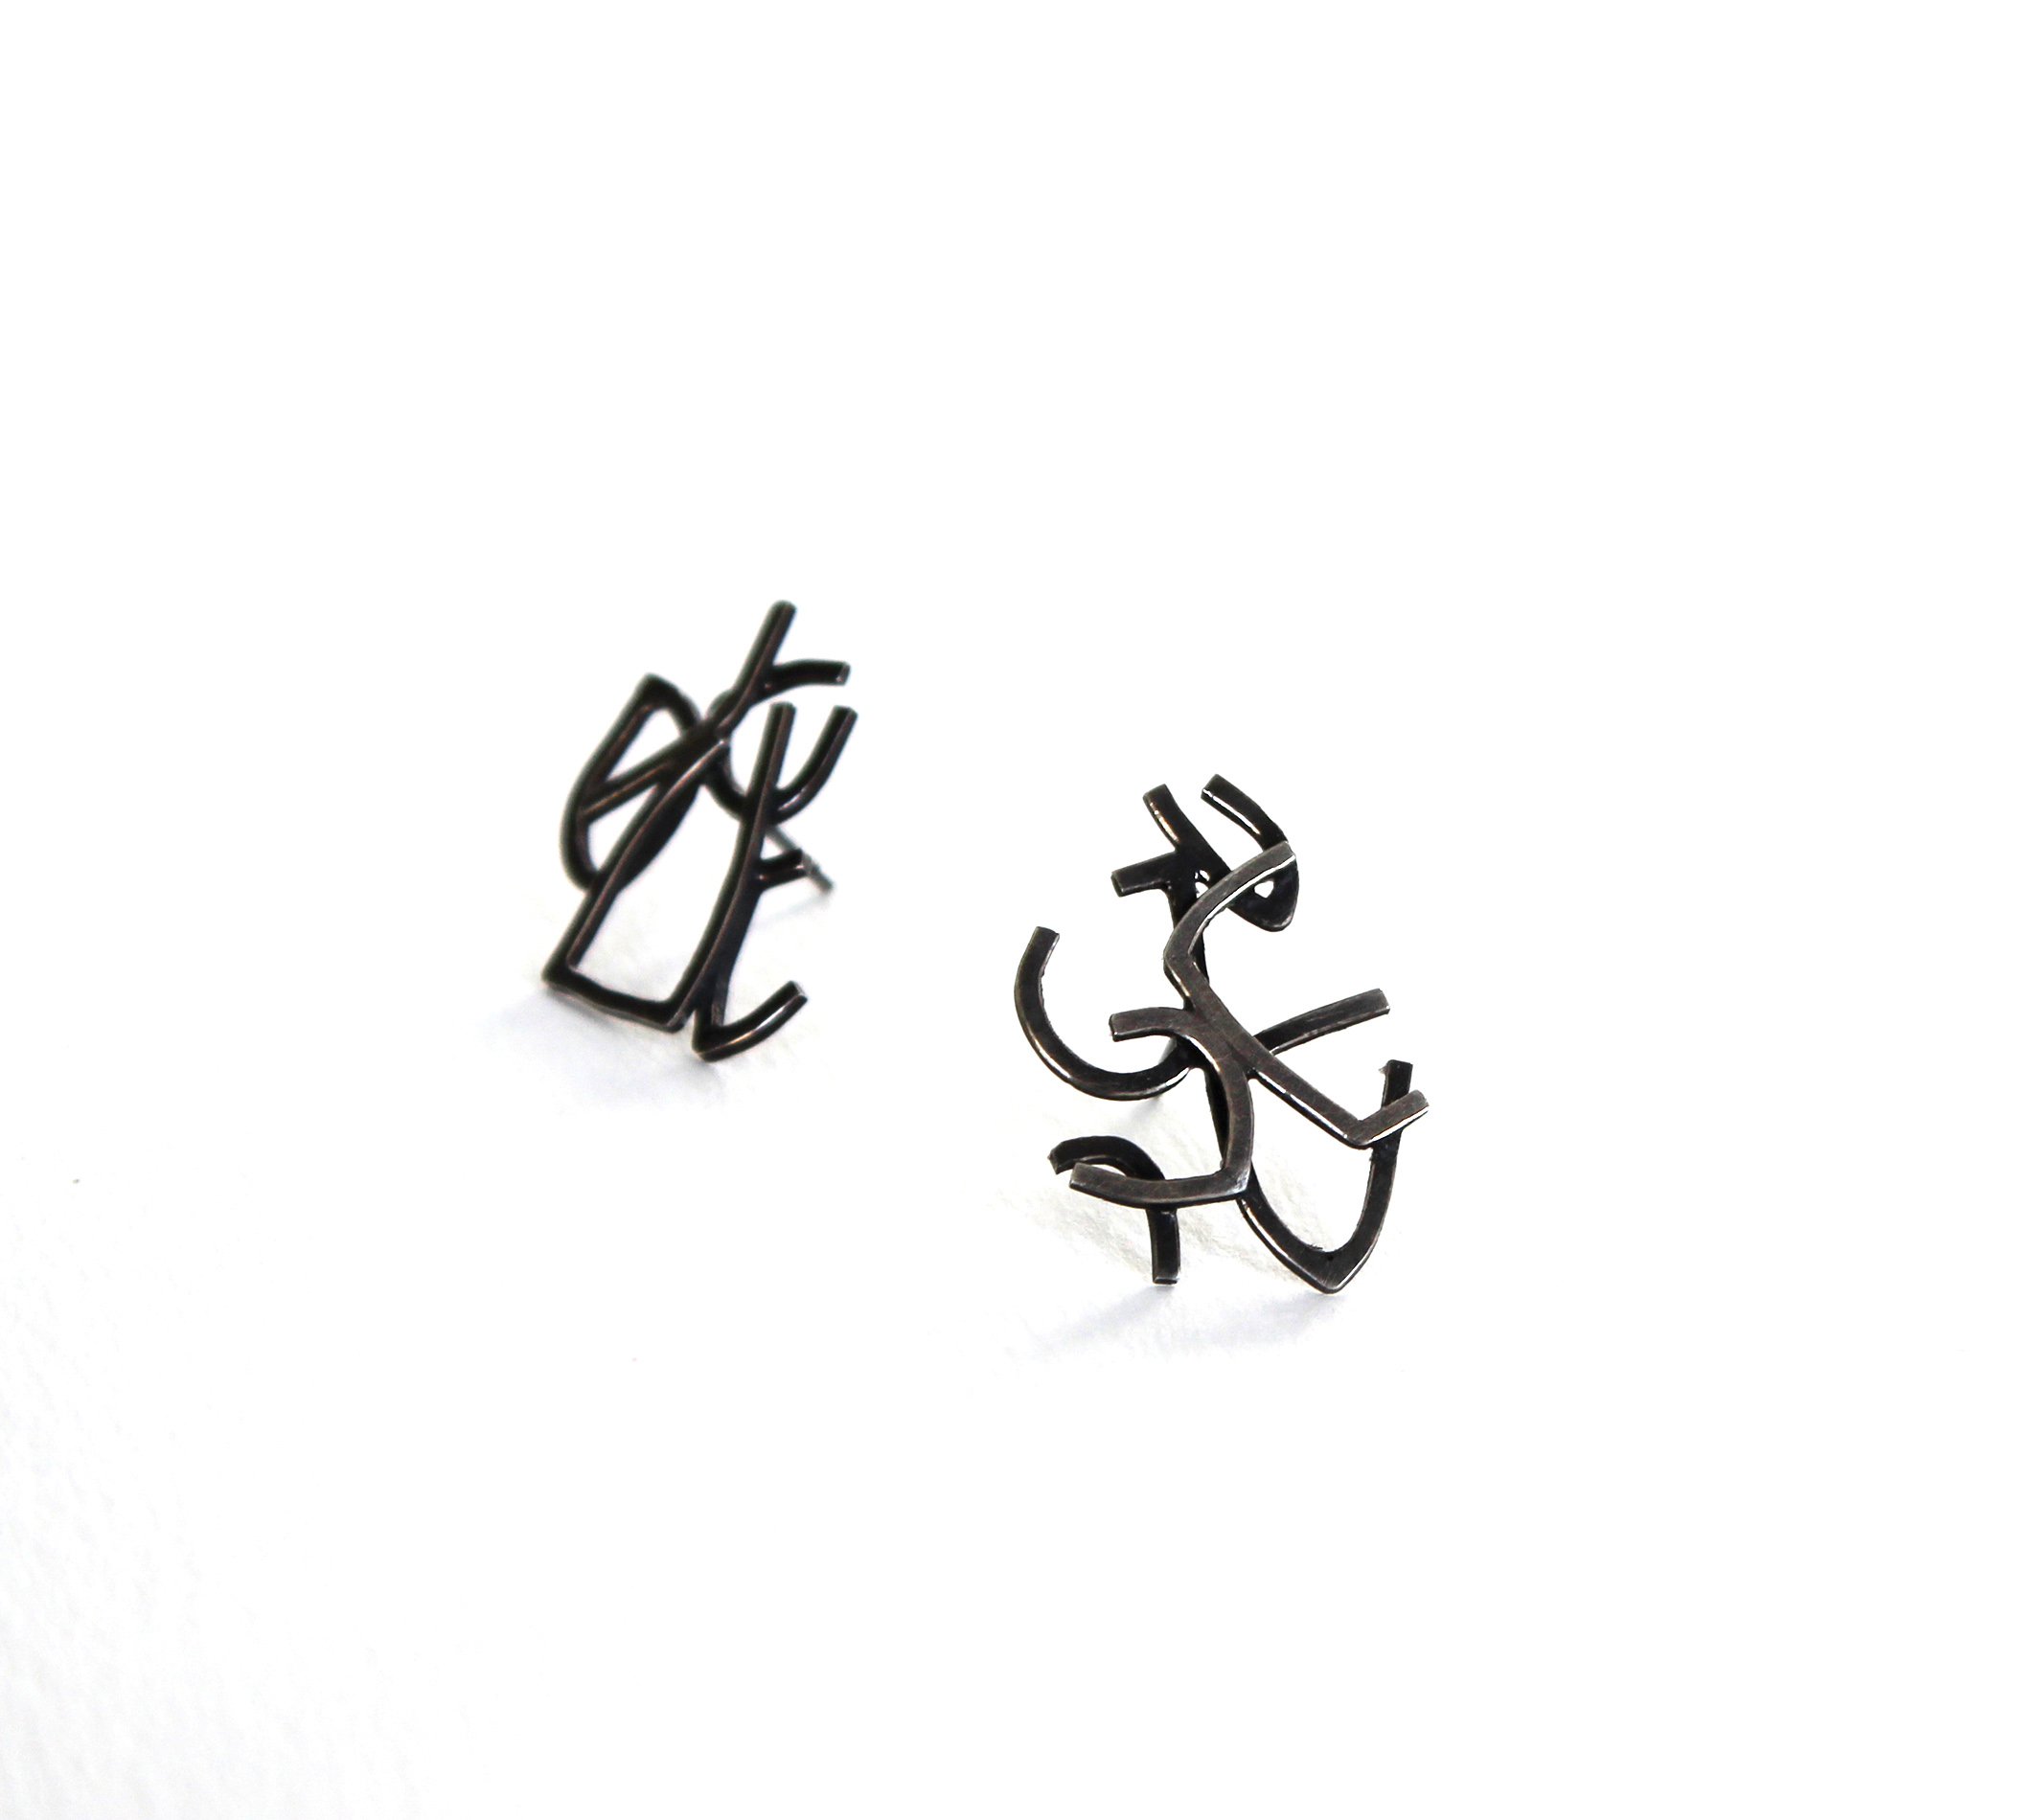 Non-identical Intricate Silver Sketch Studs with Black Patina